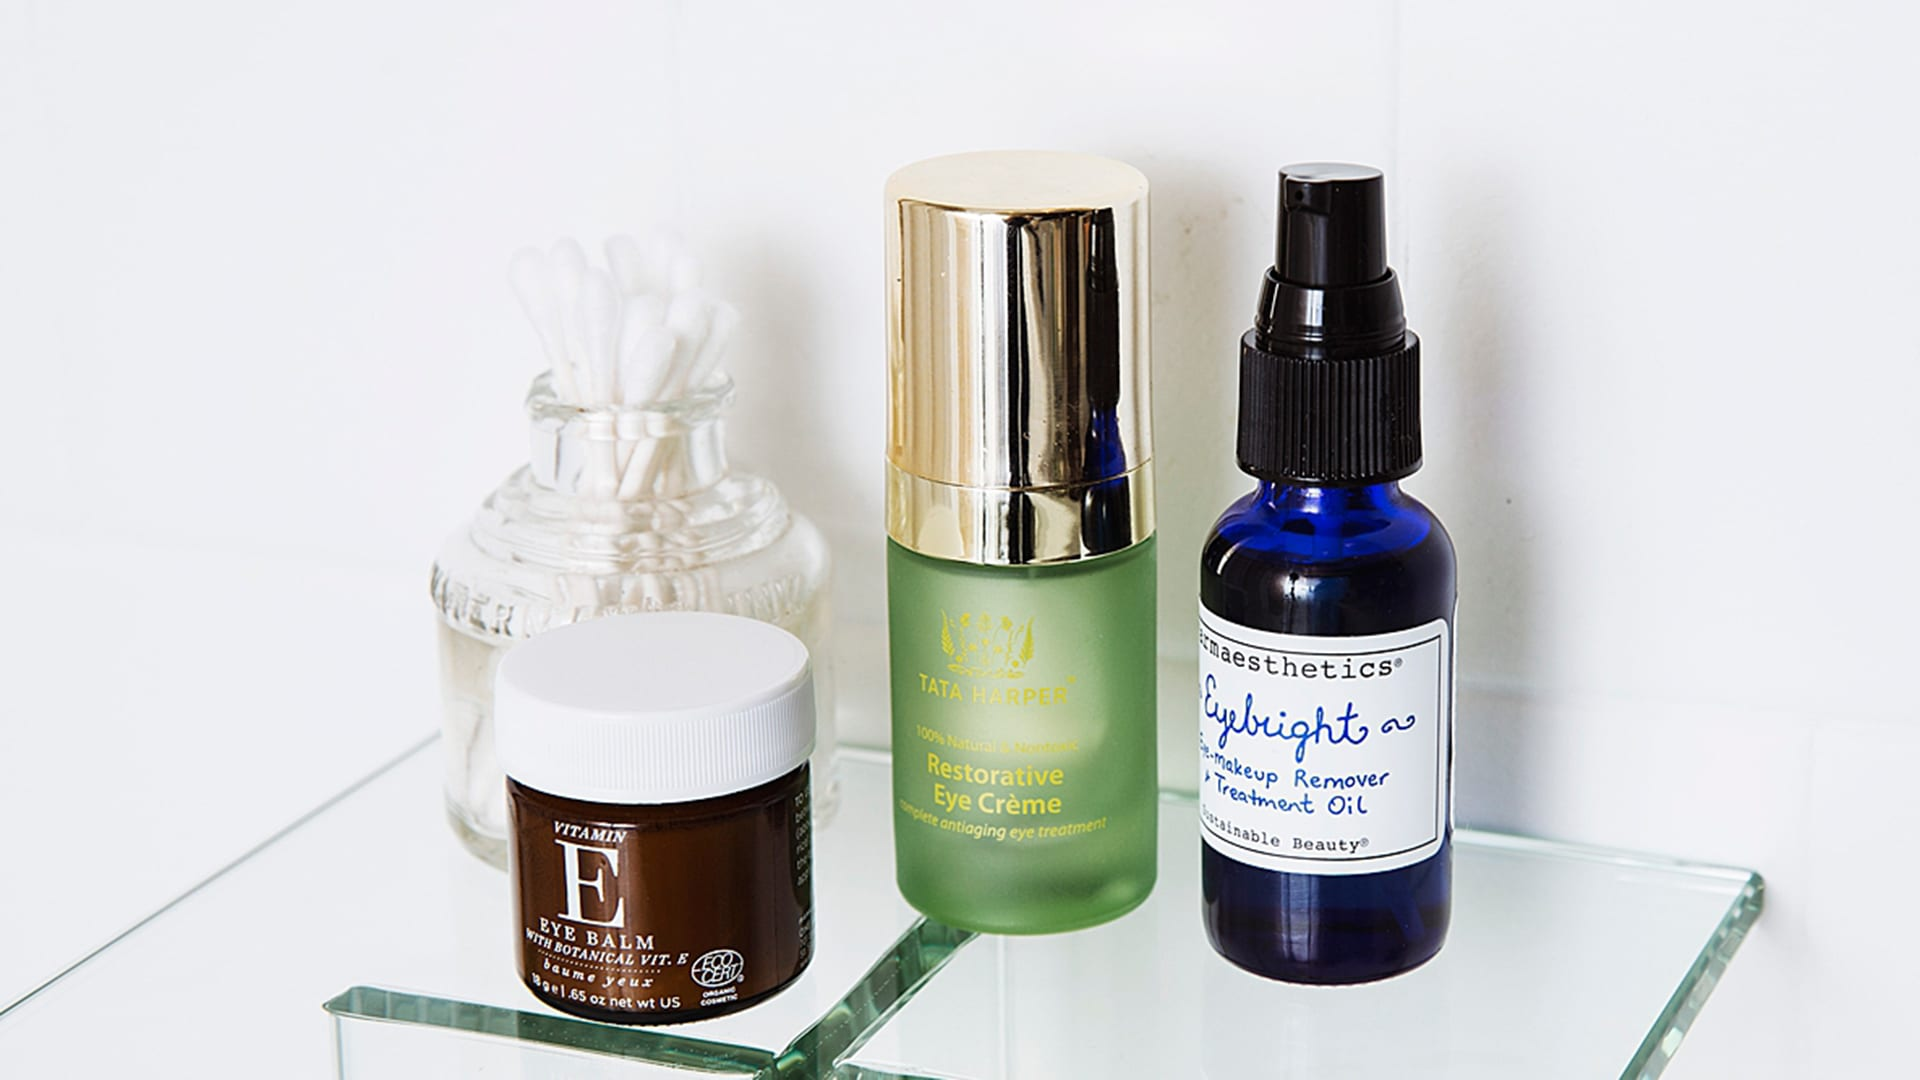 Non-toxic eye care products